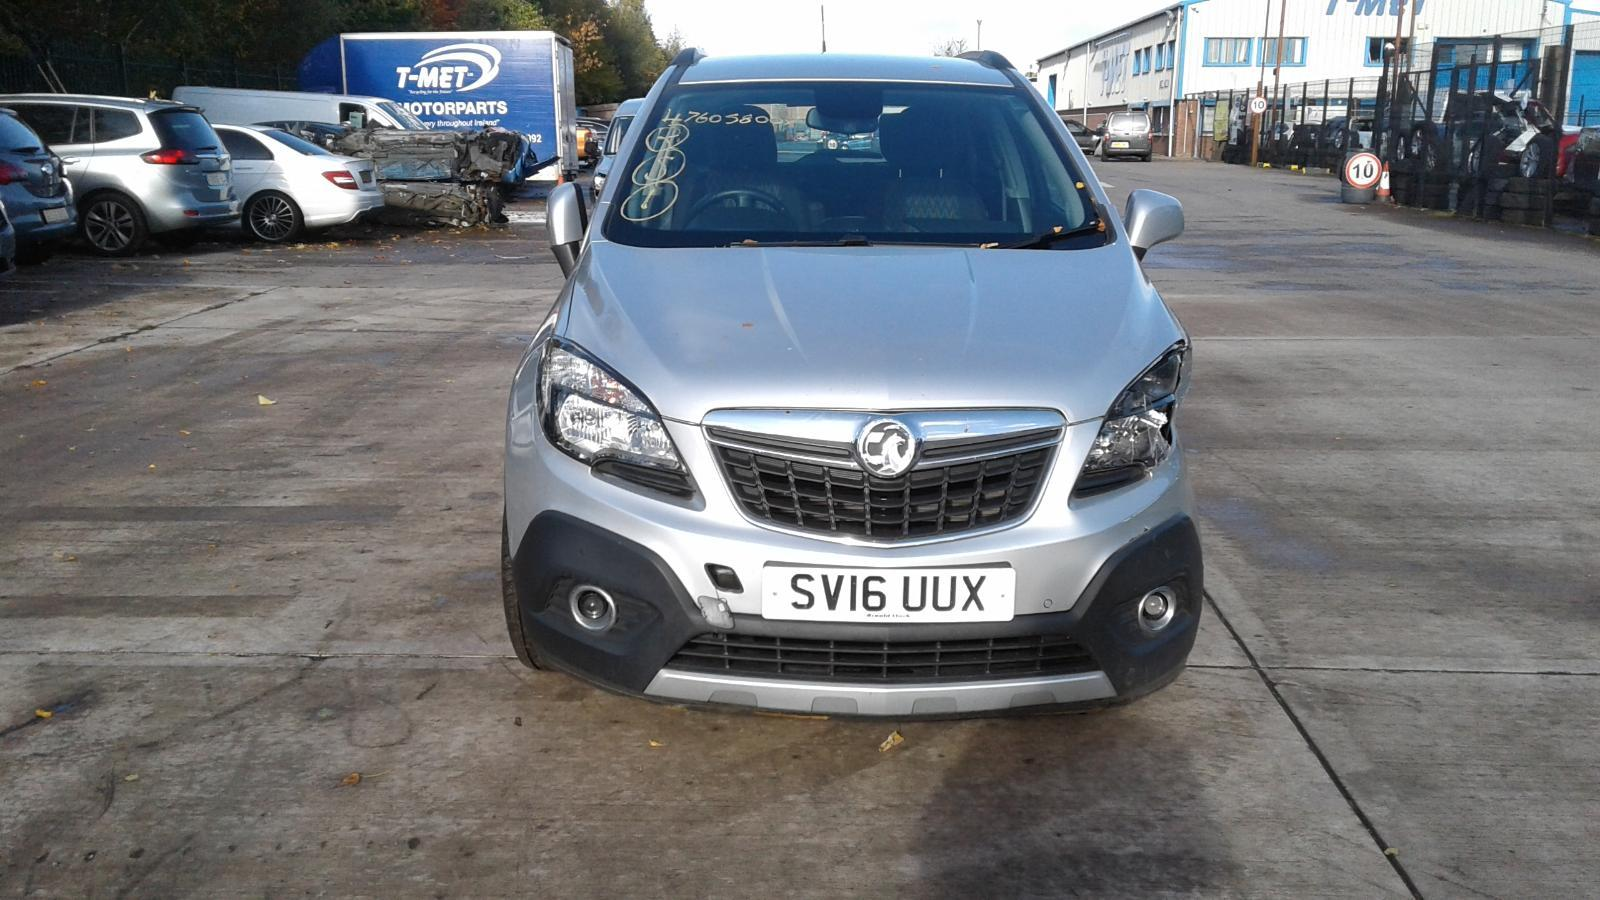 2016 VAUXHALL MOKKA FOR SALE £5750 ONO Image